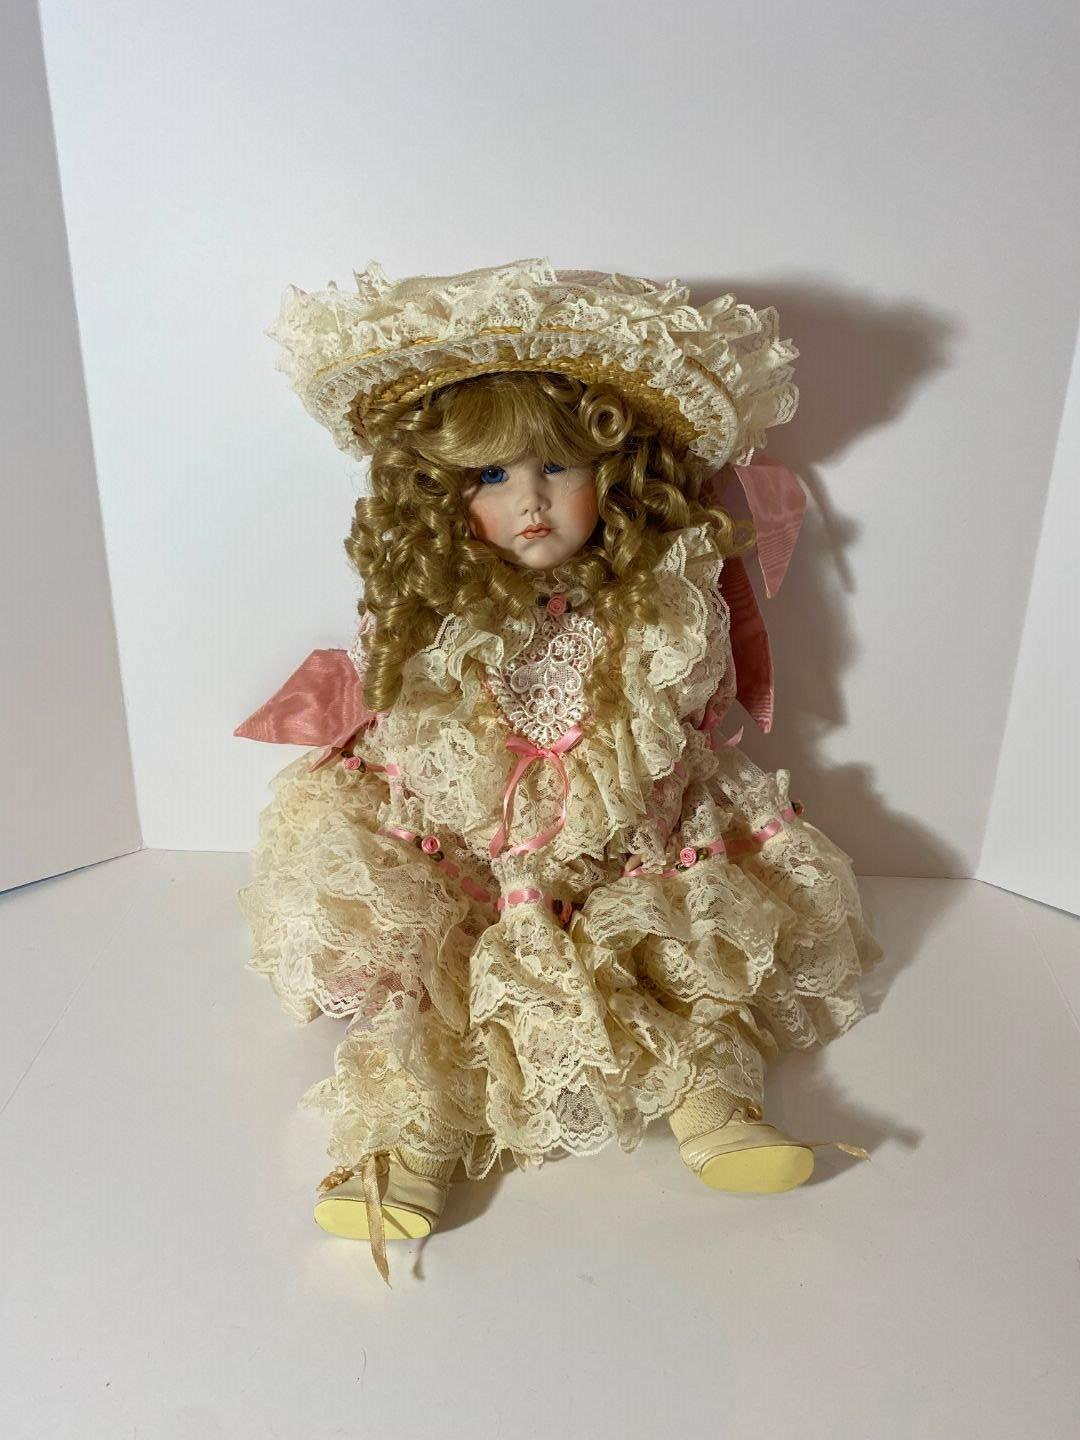 """Lot # 250 - 100% Porcelain """"Collectible Kardolin Dolls"""" by Shirley w/Articulating Joints - Signed & Numbered #29/1000 (main image)"""